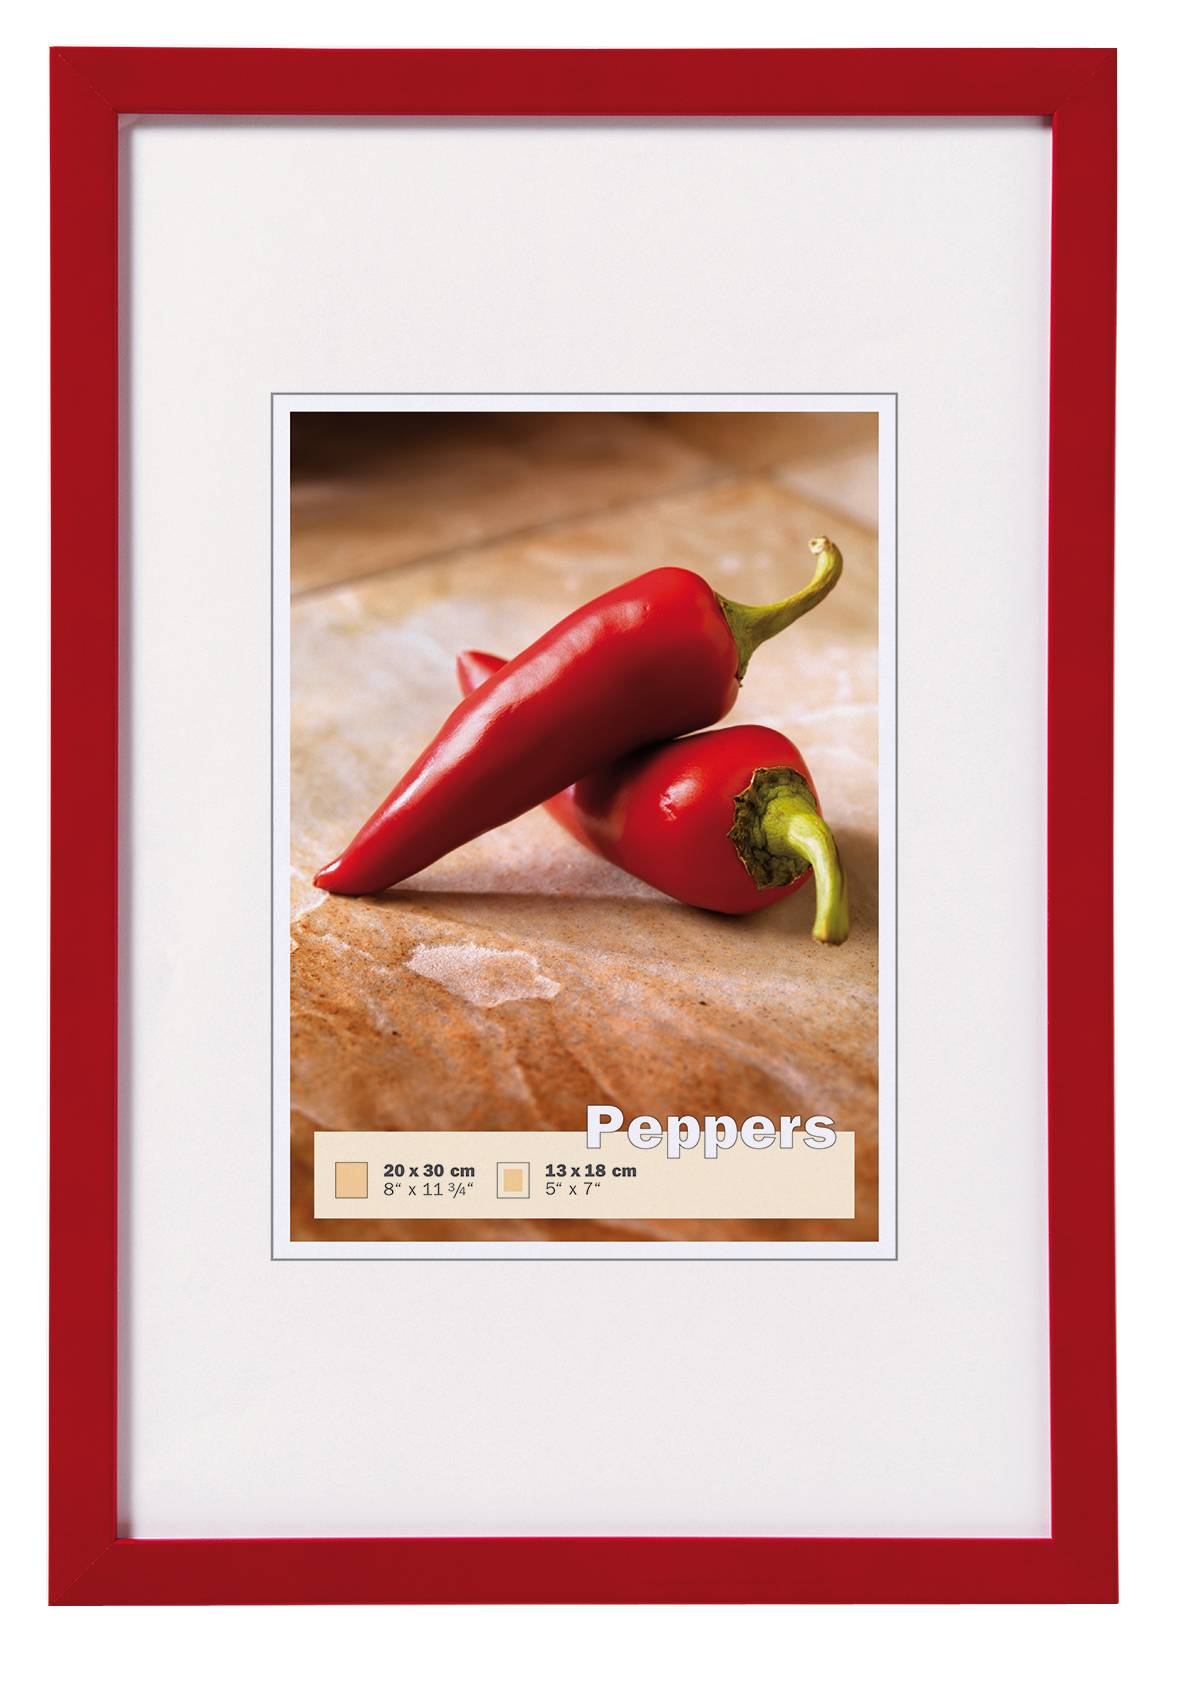 Walther Peppers Punainen 13x18 cm